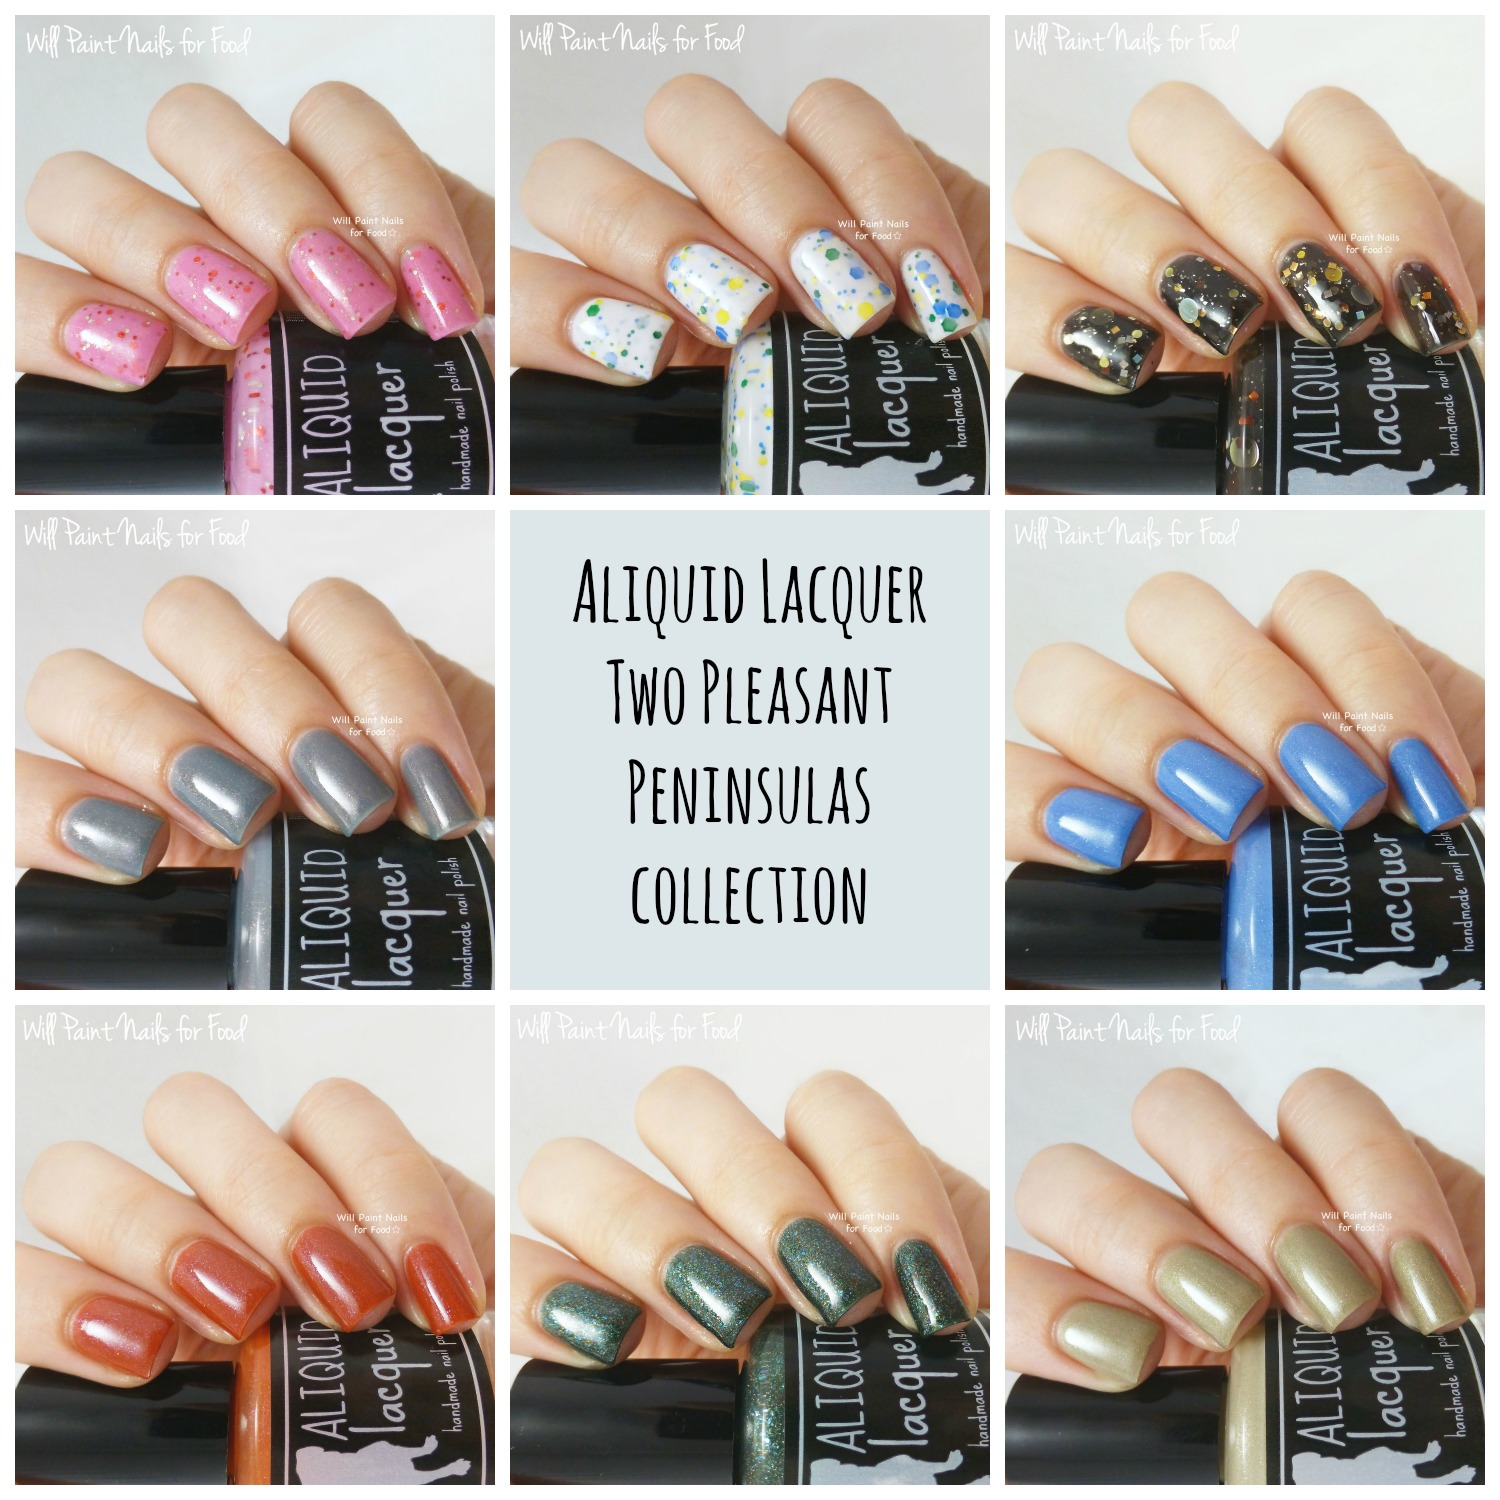 Aliquid Lacquer the Two Pleasant Peninsulas Collection